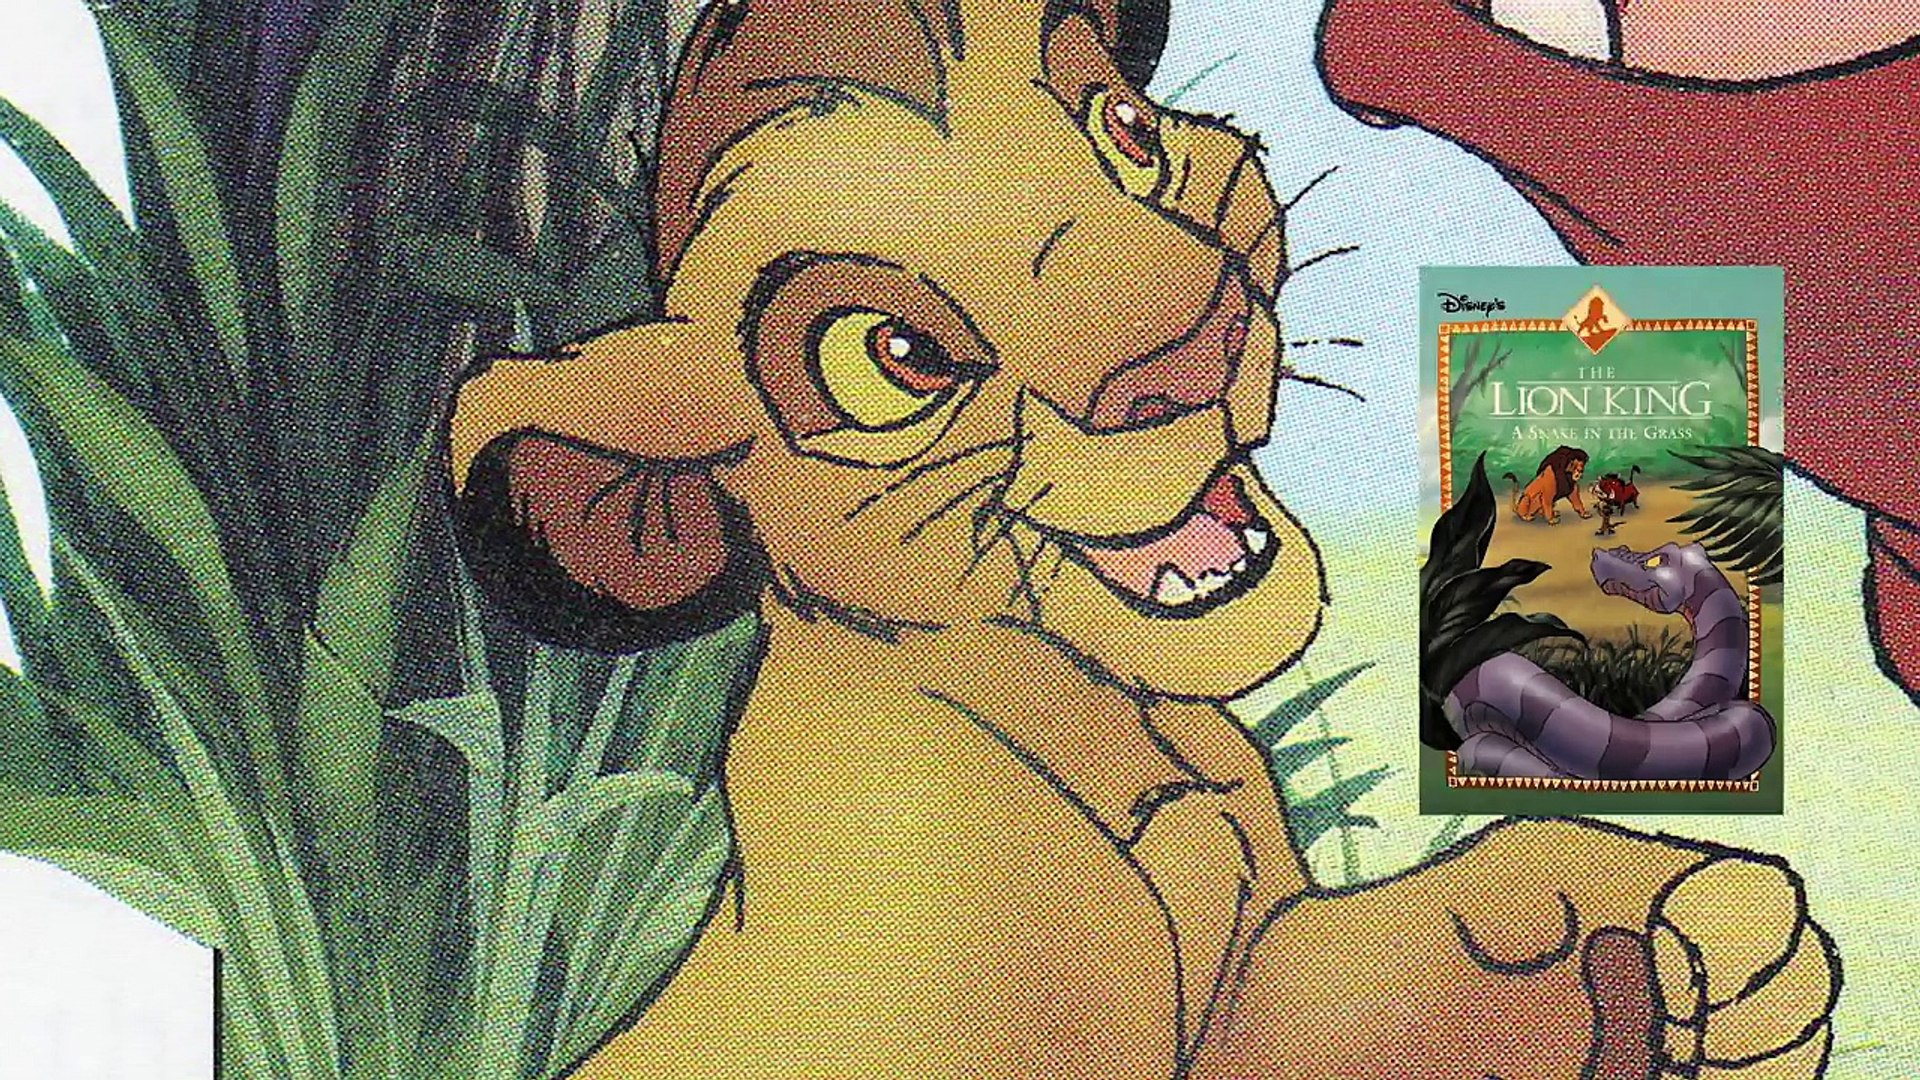 Kopa His Story Theories And Place In Lion King Canon Discovering Disney